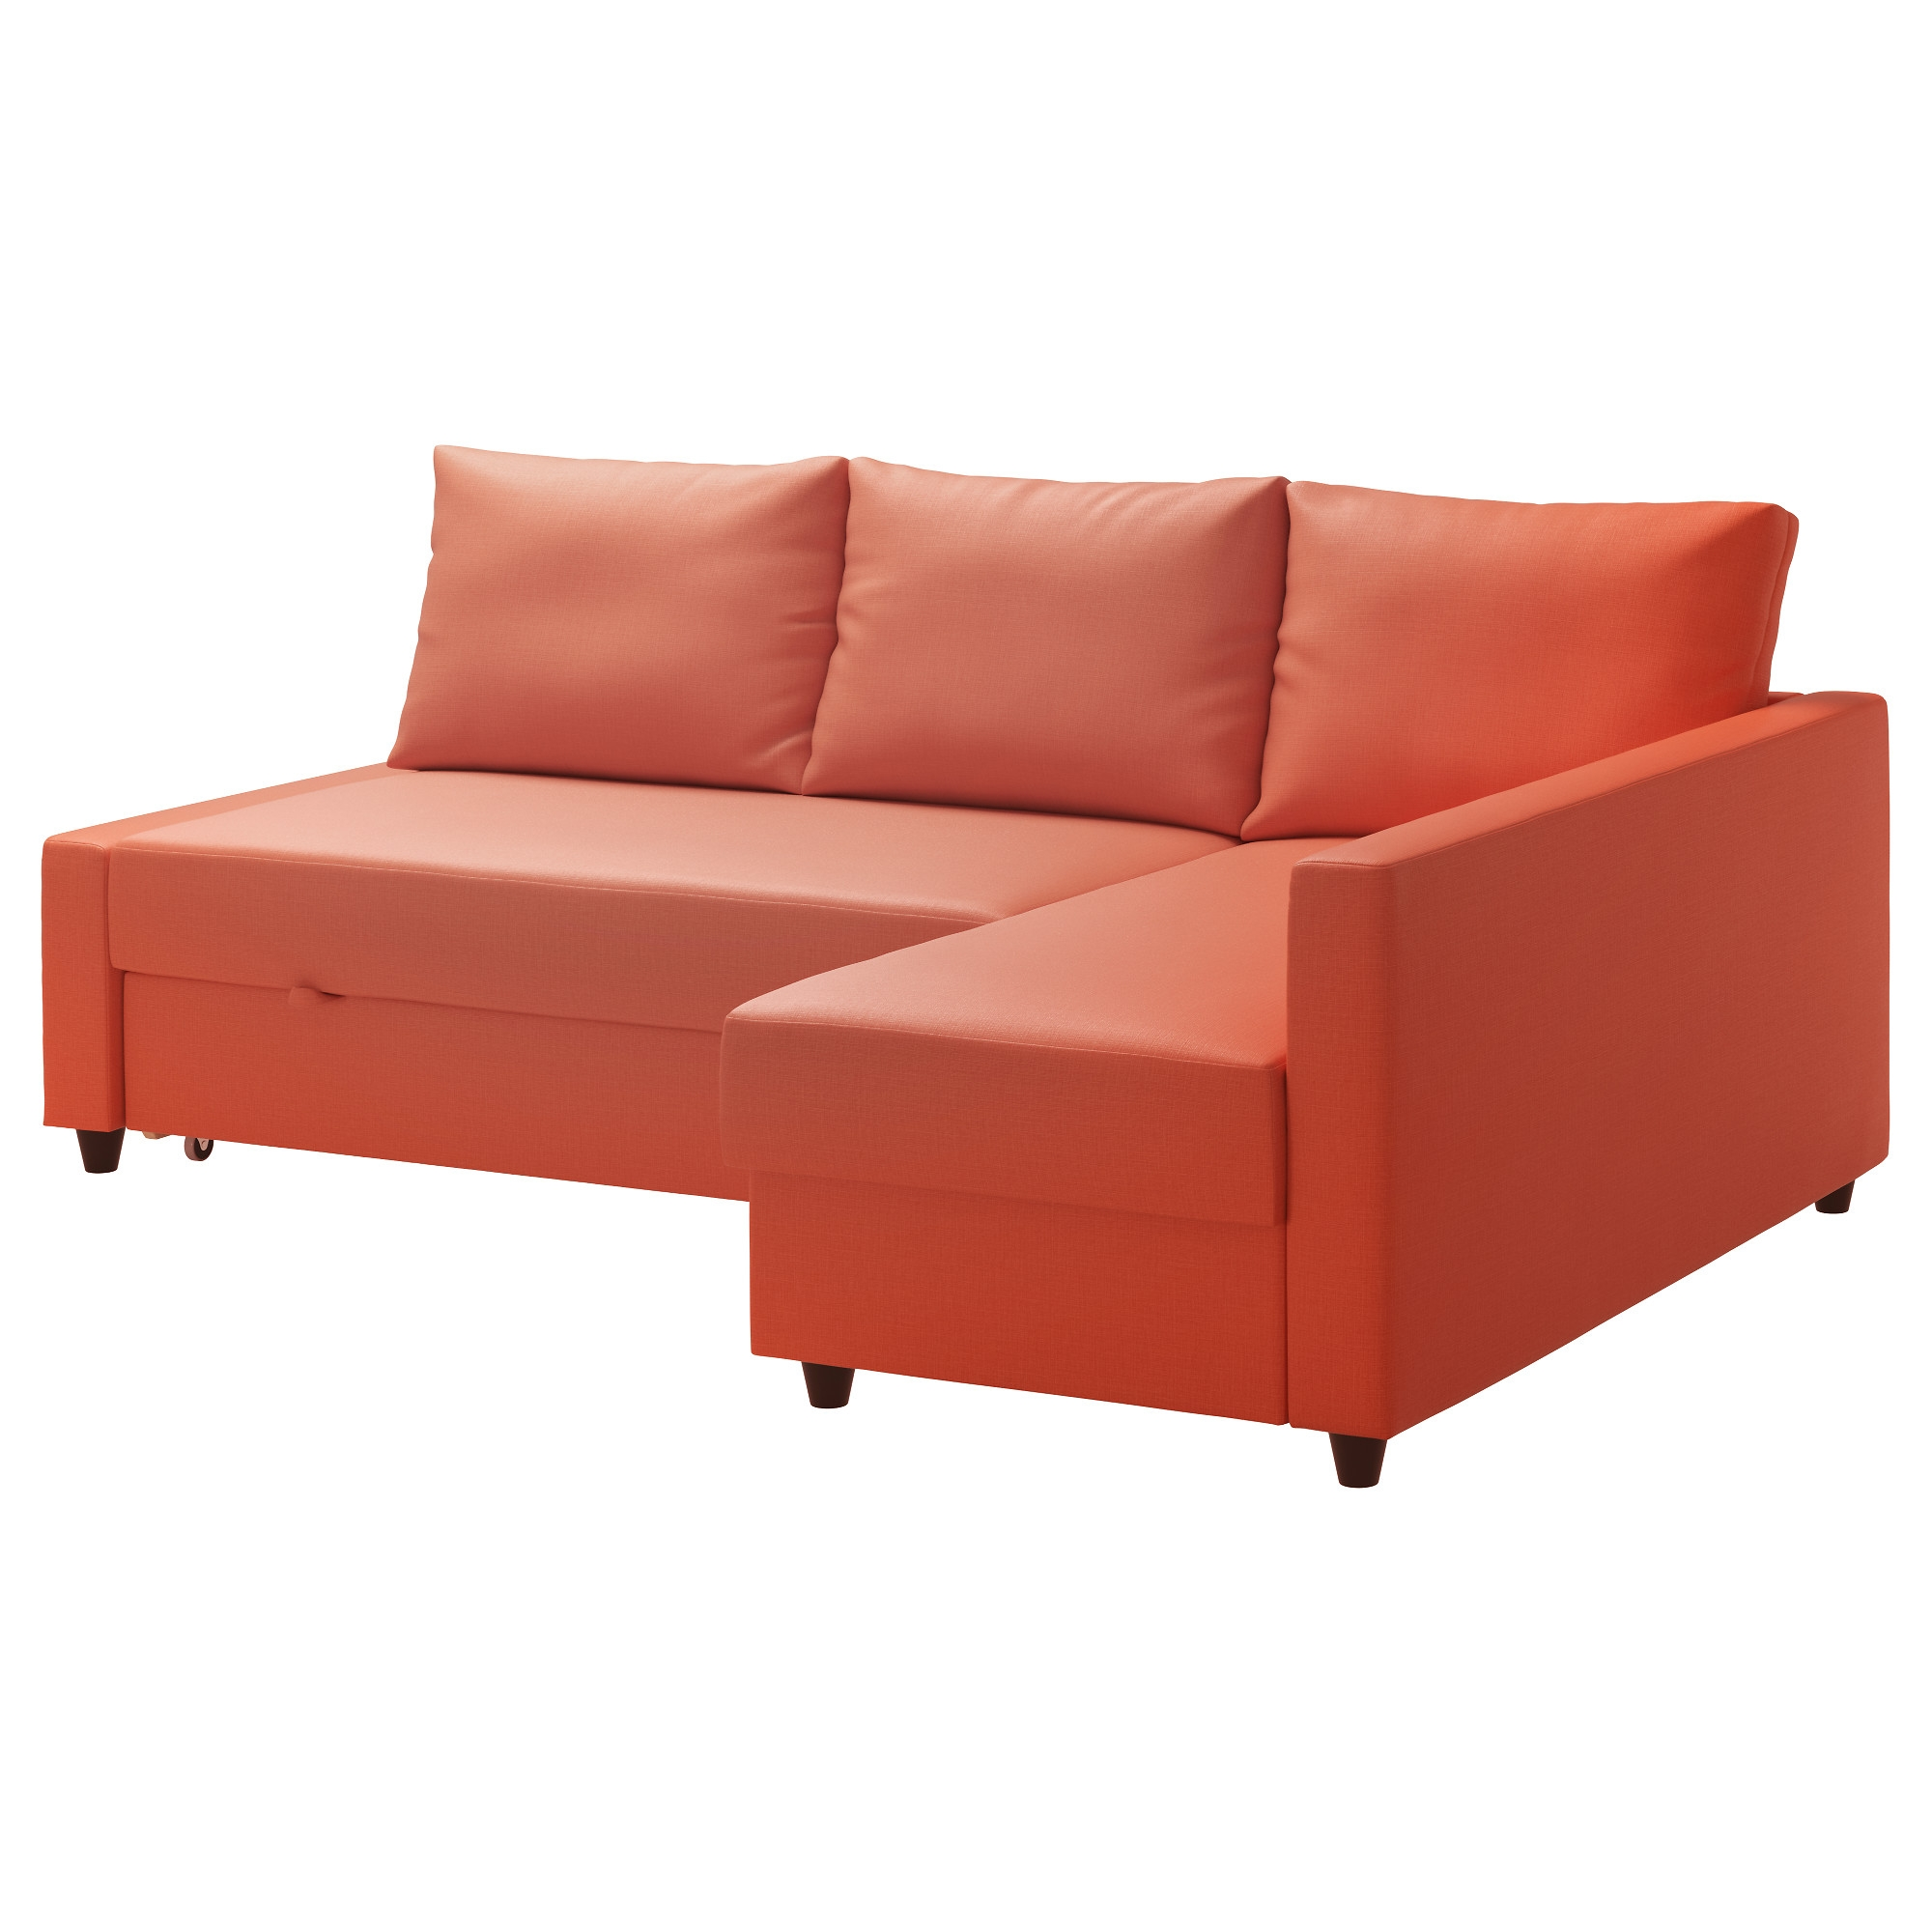 Sofas Ikea Lanzarote Friheten Corner Sofa Bed With Storage